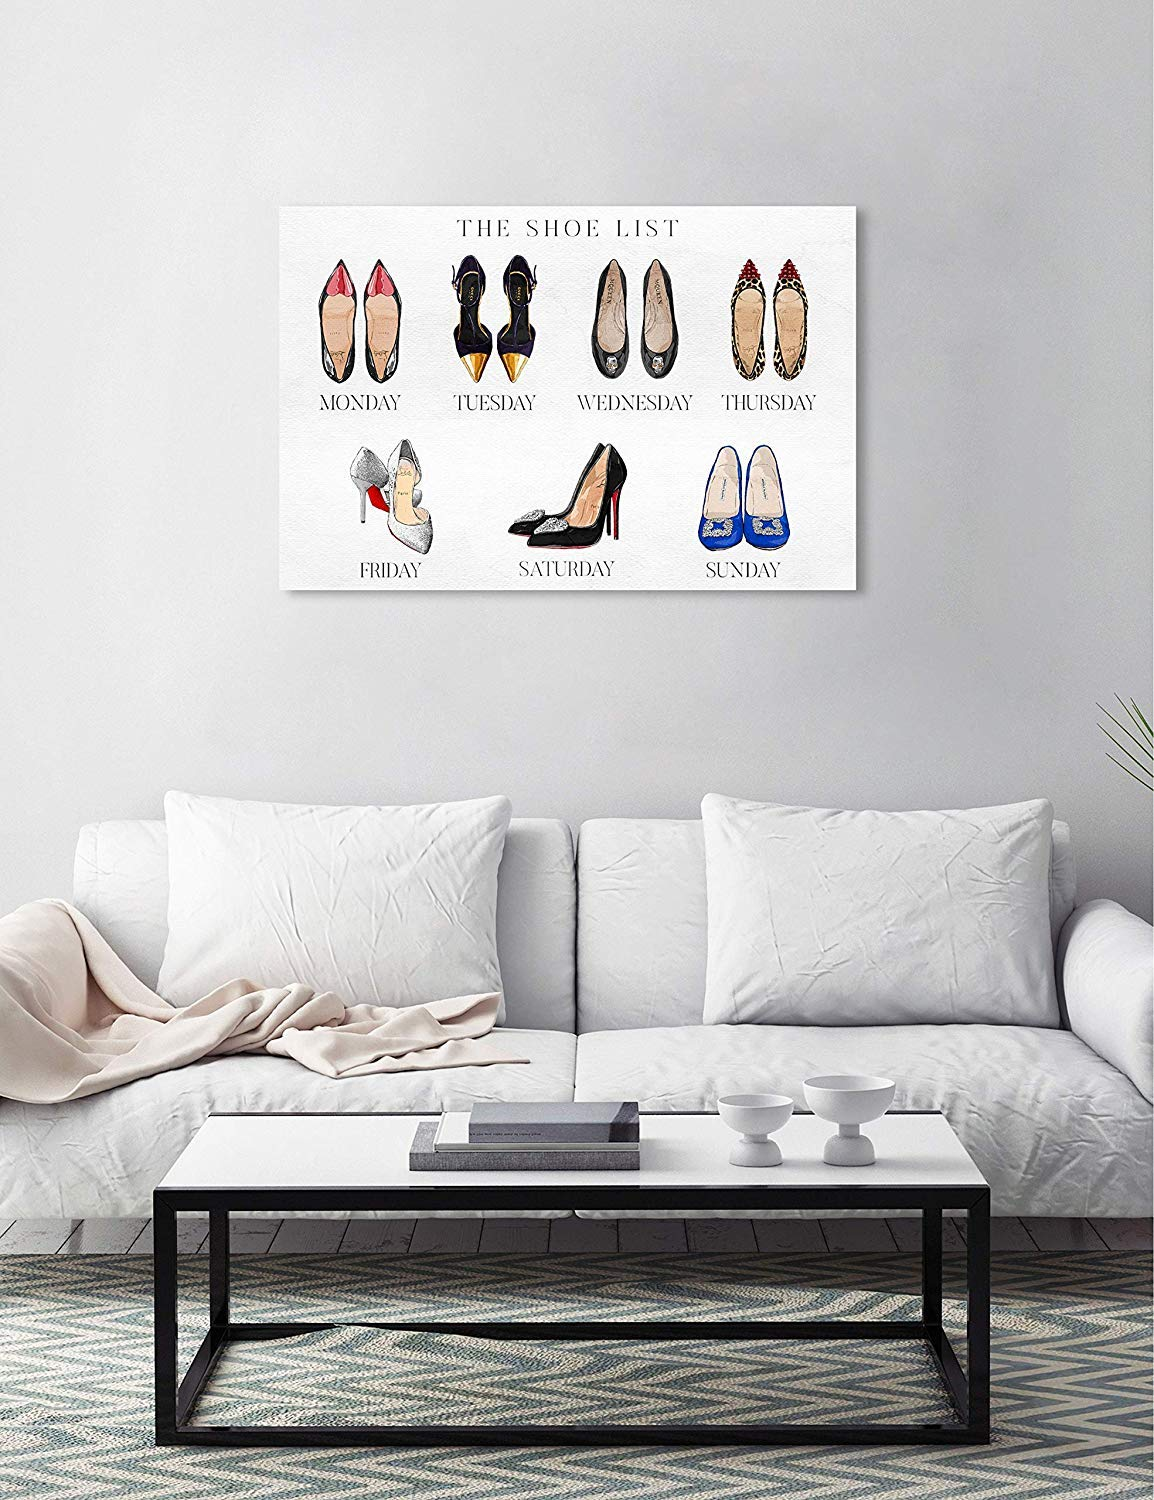 19065/_36x24/_CANV/_XHD Oliver Gal The Shoe List The Fashion Wall Art Decor Collection Modern Premium Canvas Art Print The Oliver Gal Artist Co